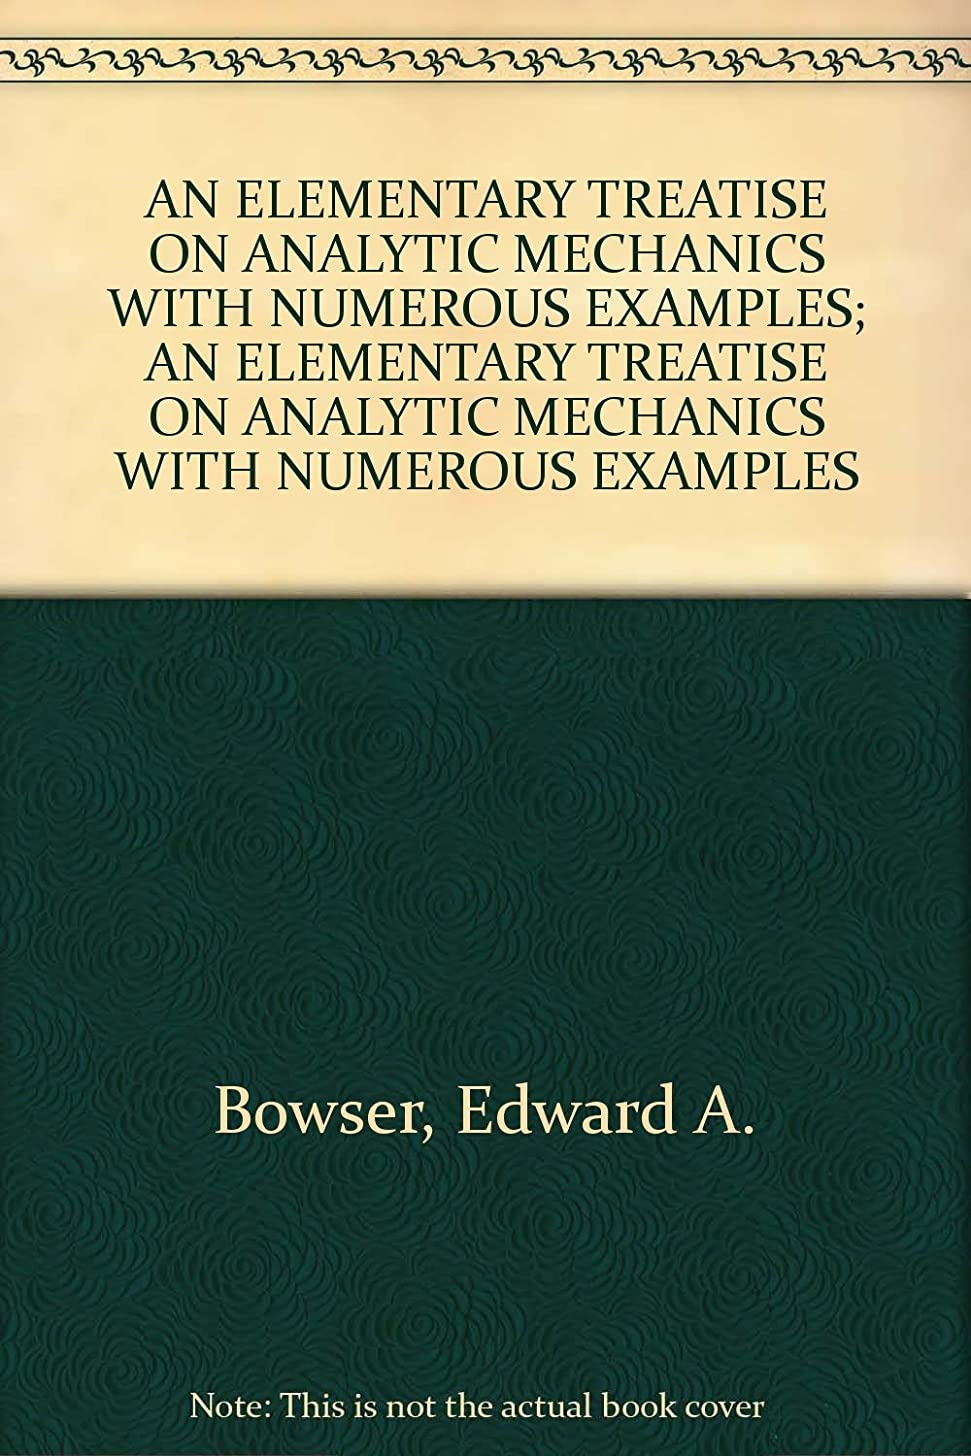 An Elementary Treatise on Analytic Mechanics, With Numerous Examples (Fifteenth Edition)